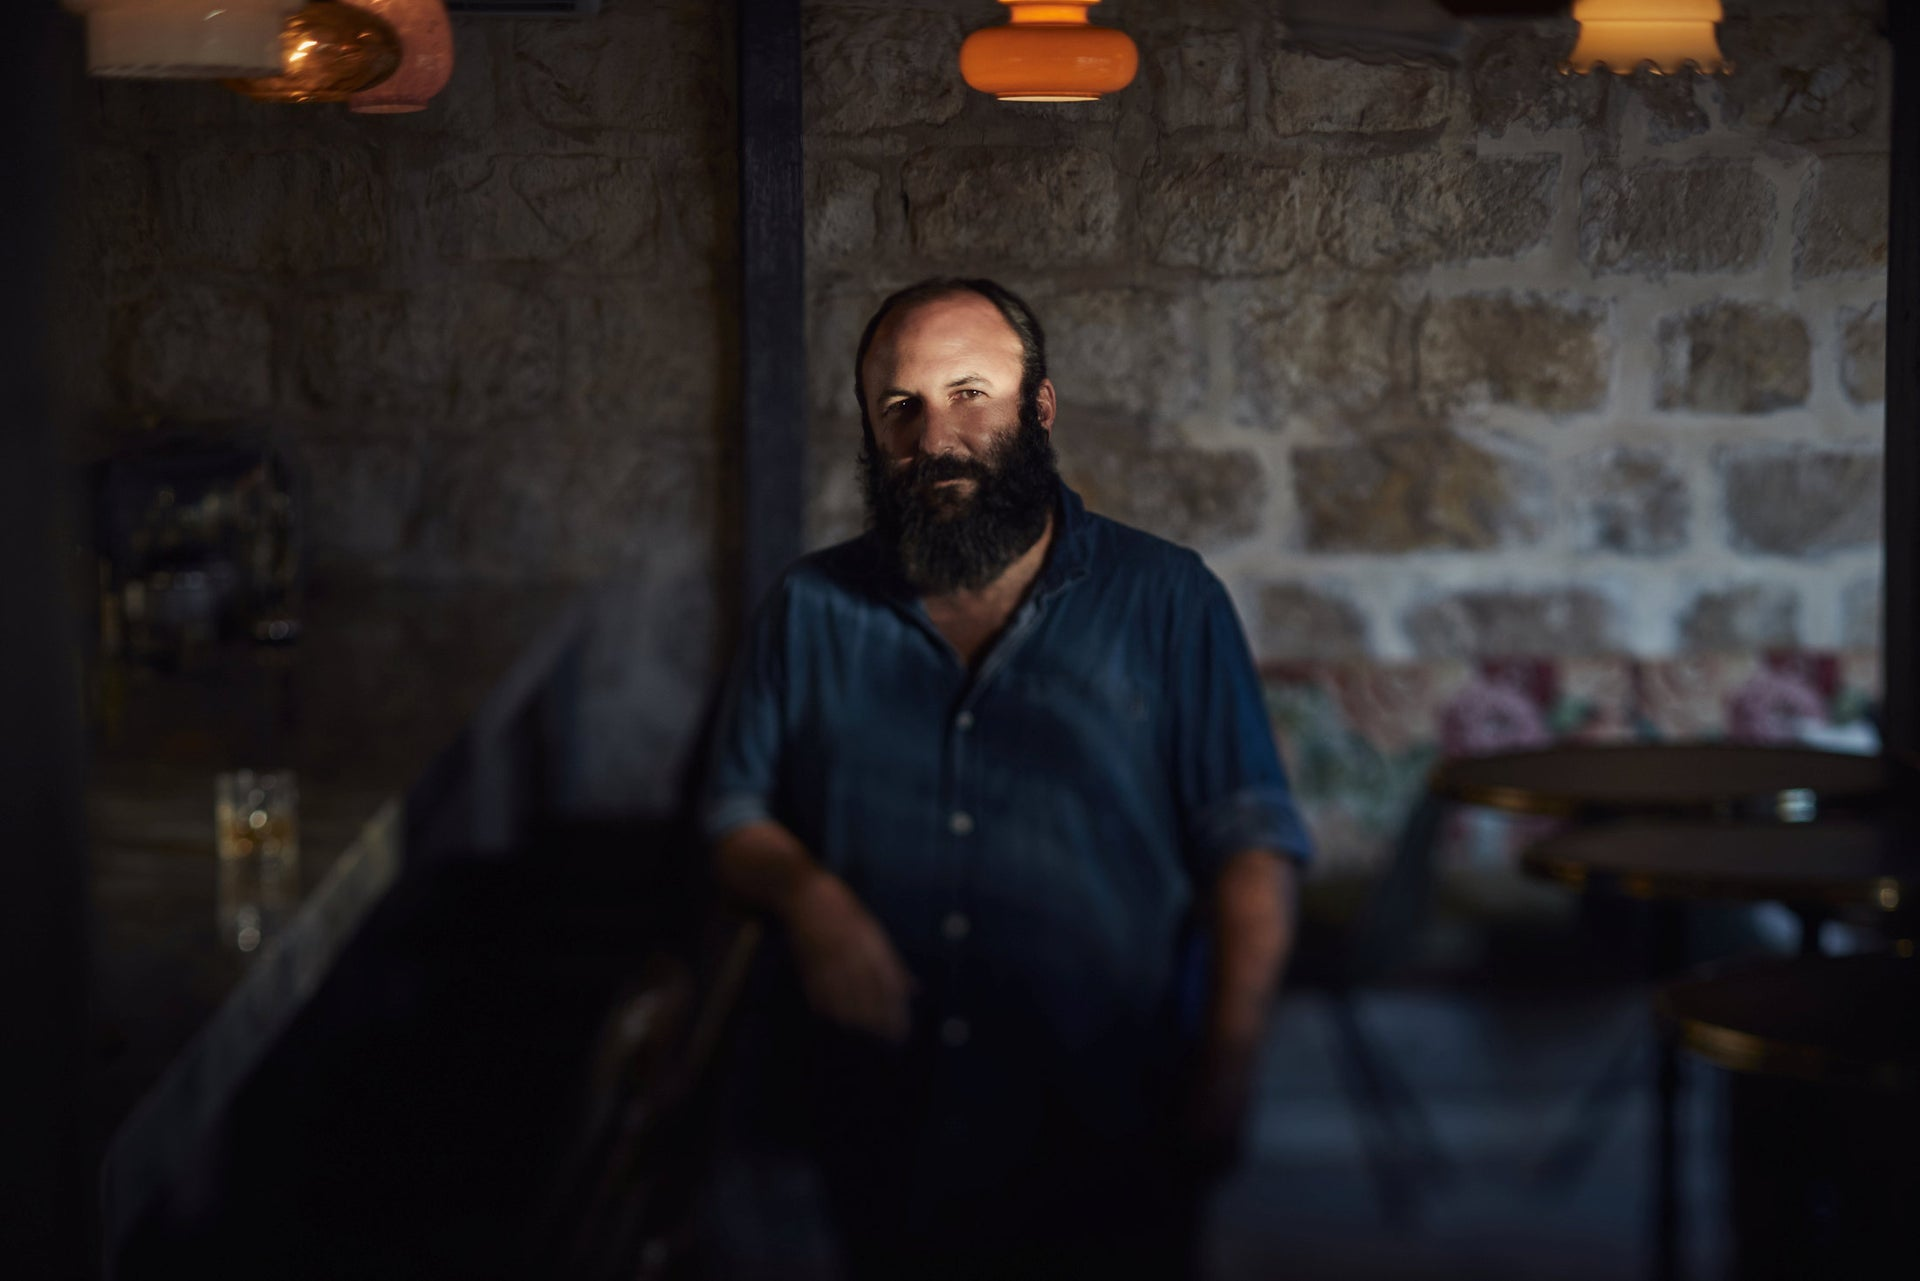 Hedai Ofaimme, one of the owners of Hadir bar in Jerusalem.